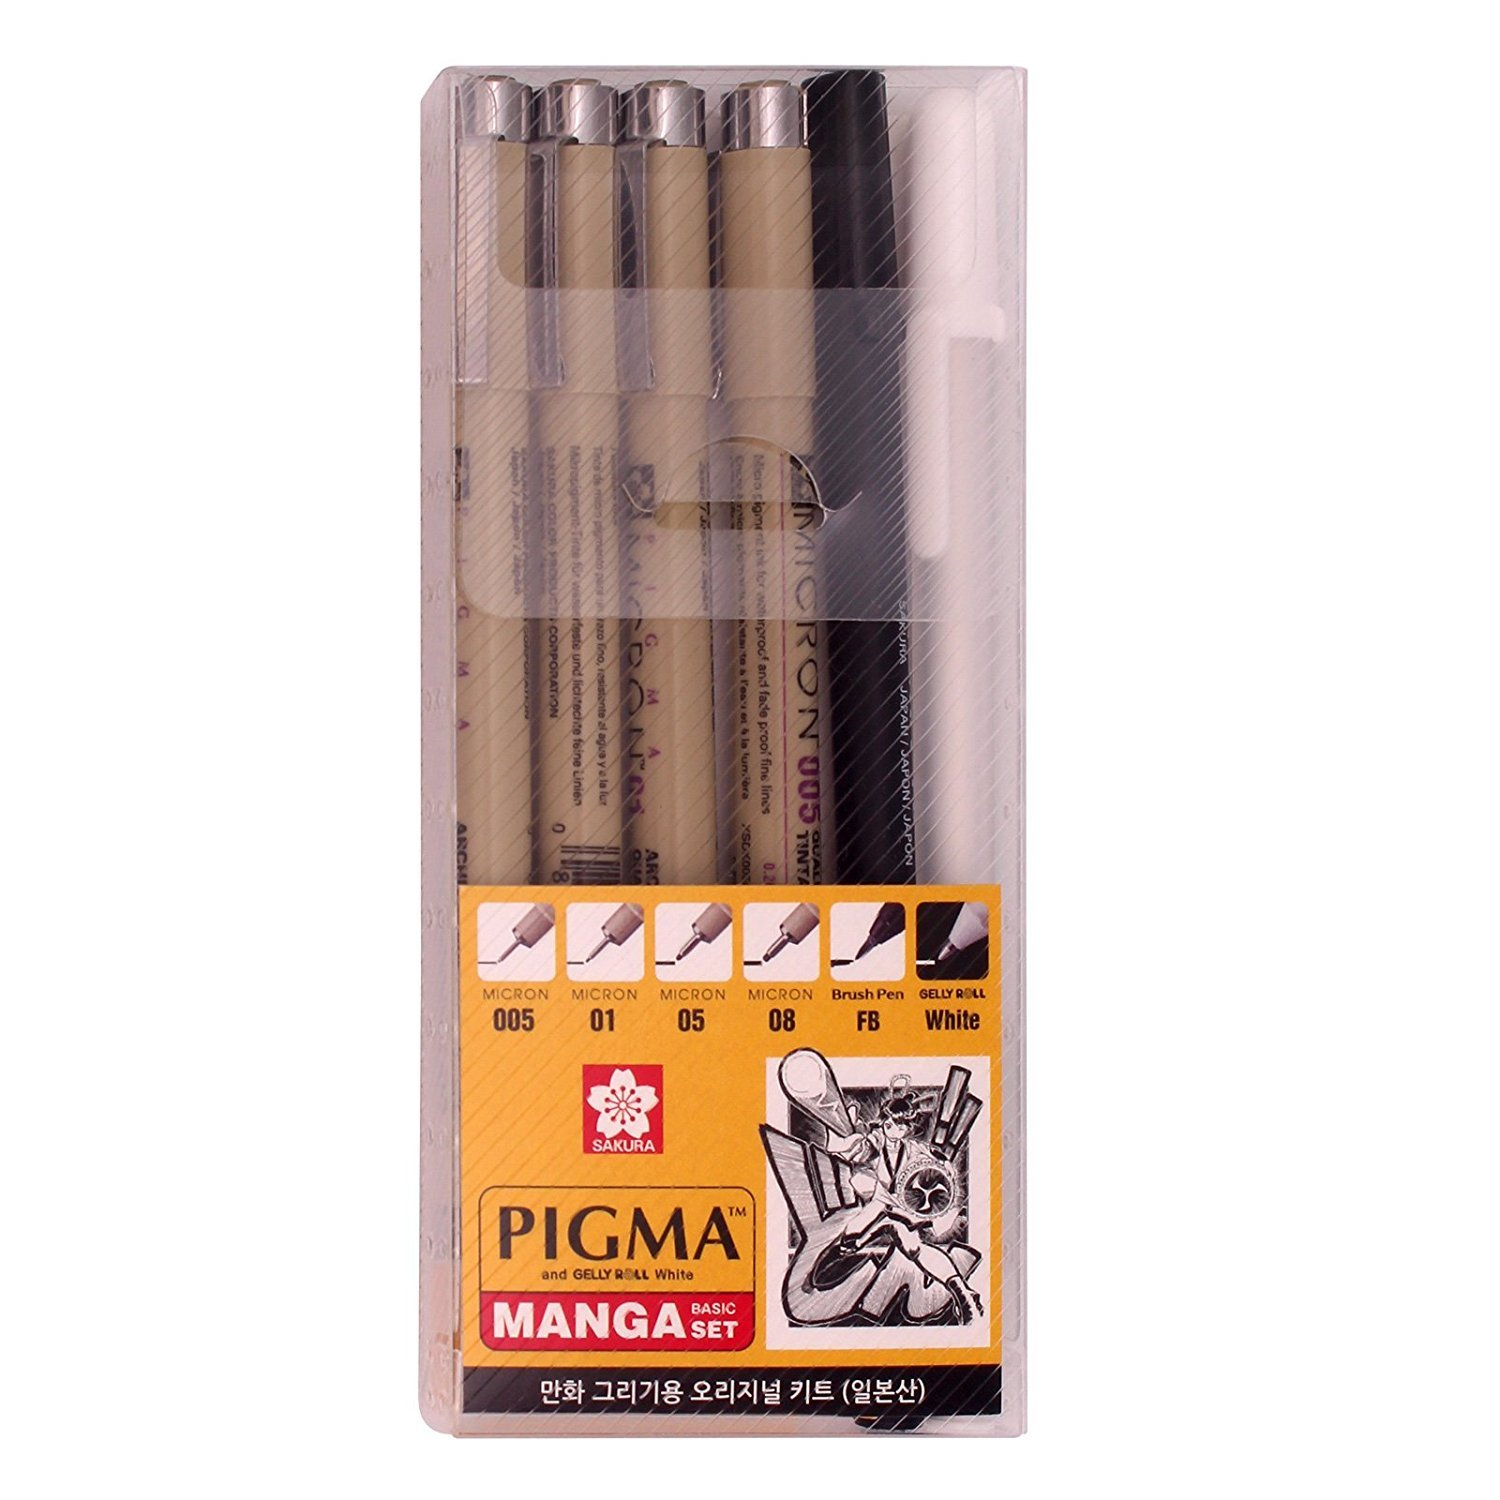 Sakura Pm0606 Pigma Manga Basic Set (005, 01, 05, 08, Fb, White) 4336949601